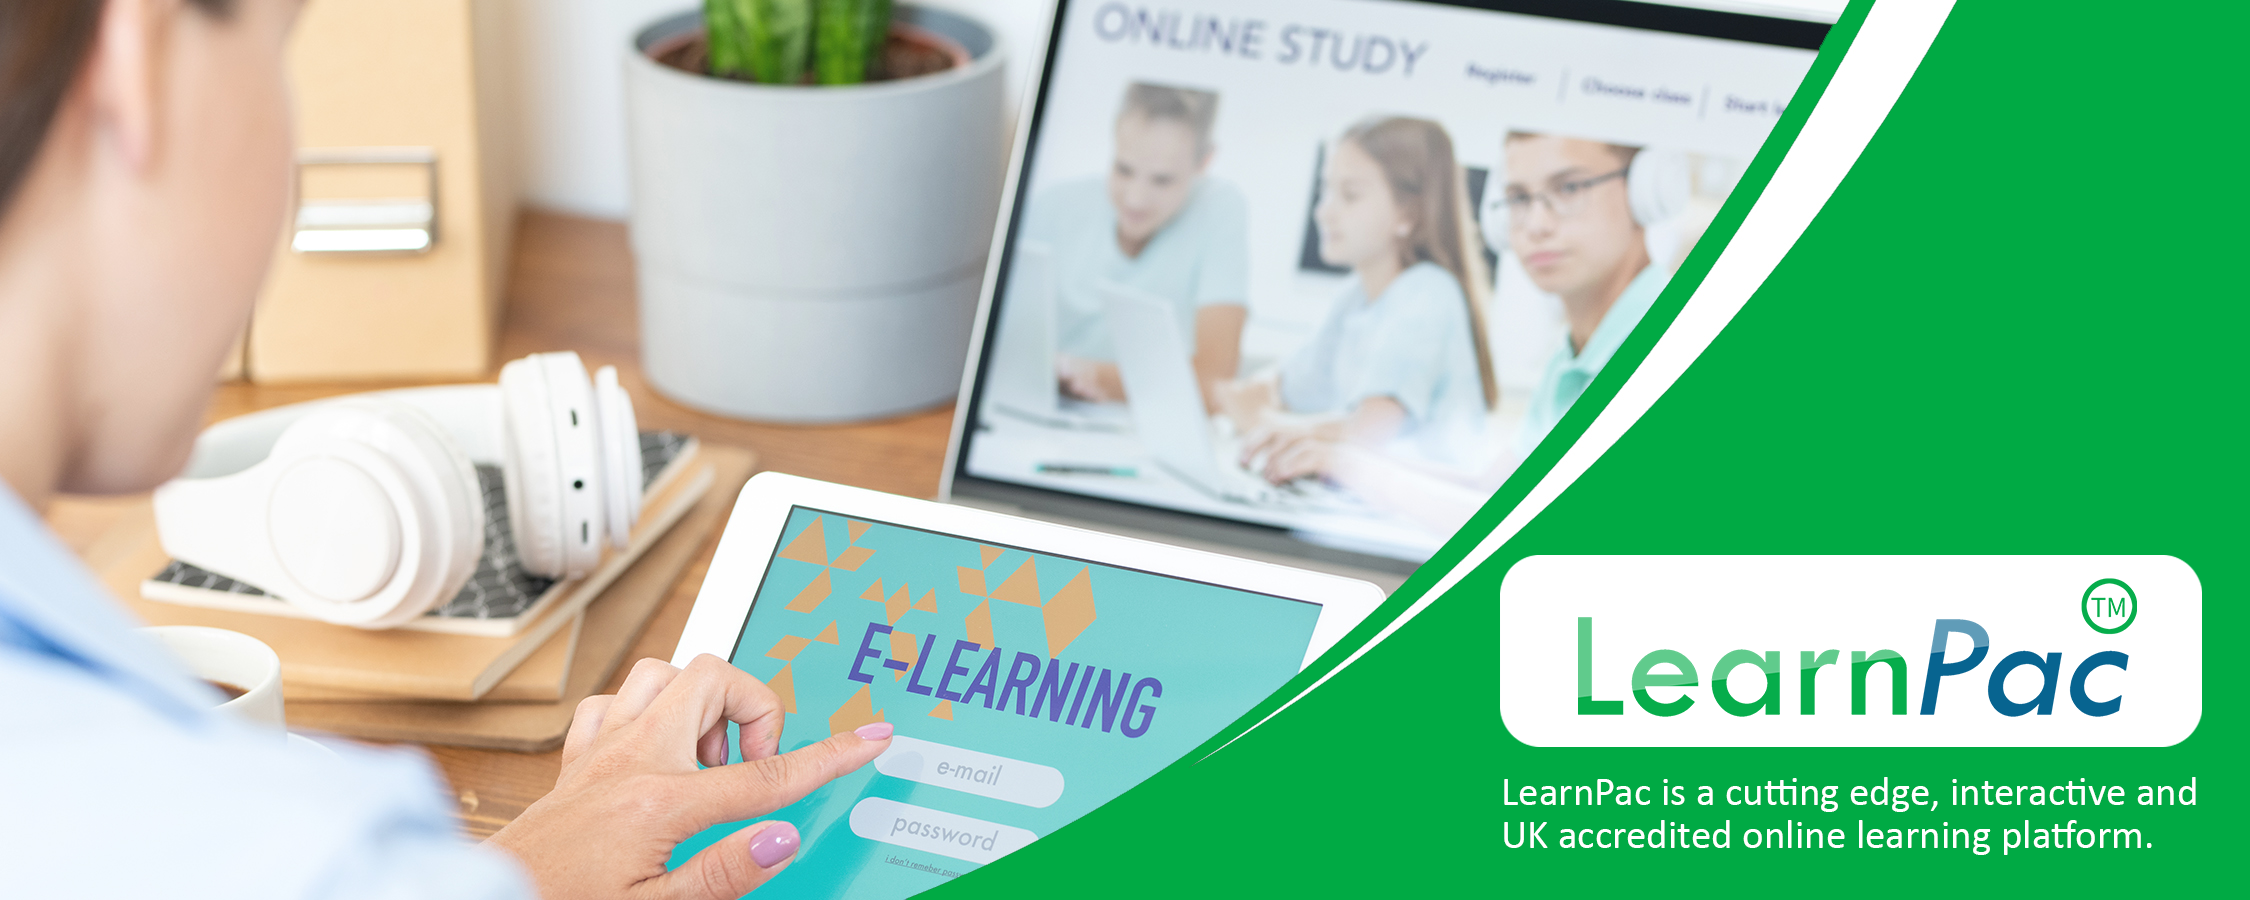 COSHH Training - Online Learning Courses - E-Learning Courses - LearnPac Systems UK -